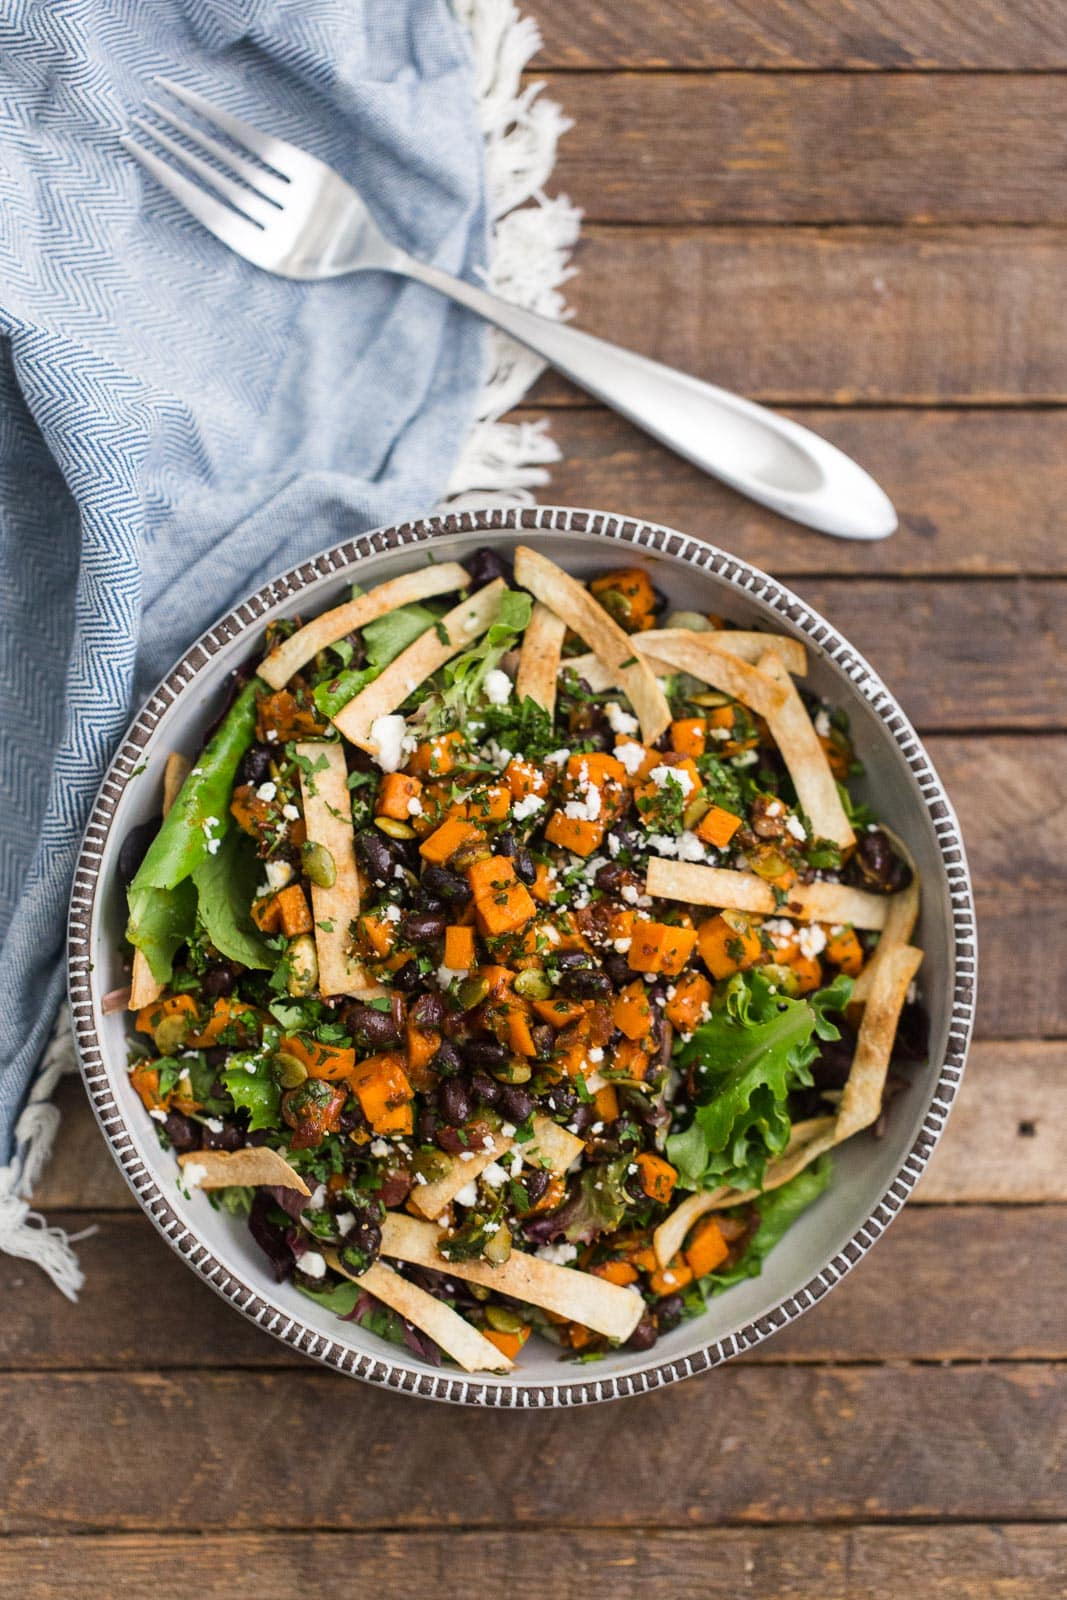 Chipotle Sweet Potato Taco Salad with Black Beans